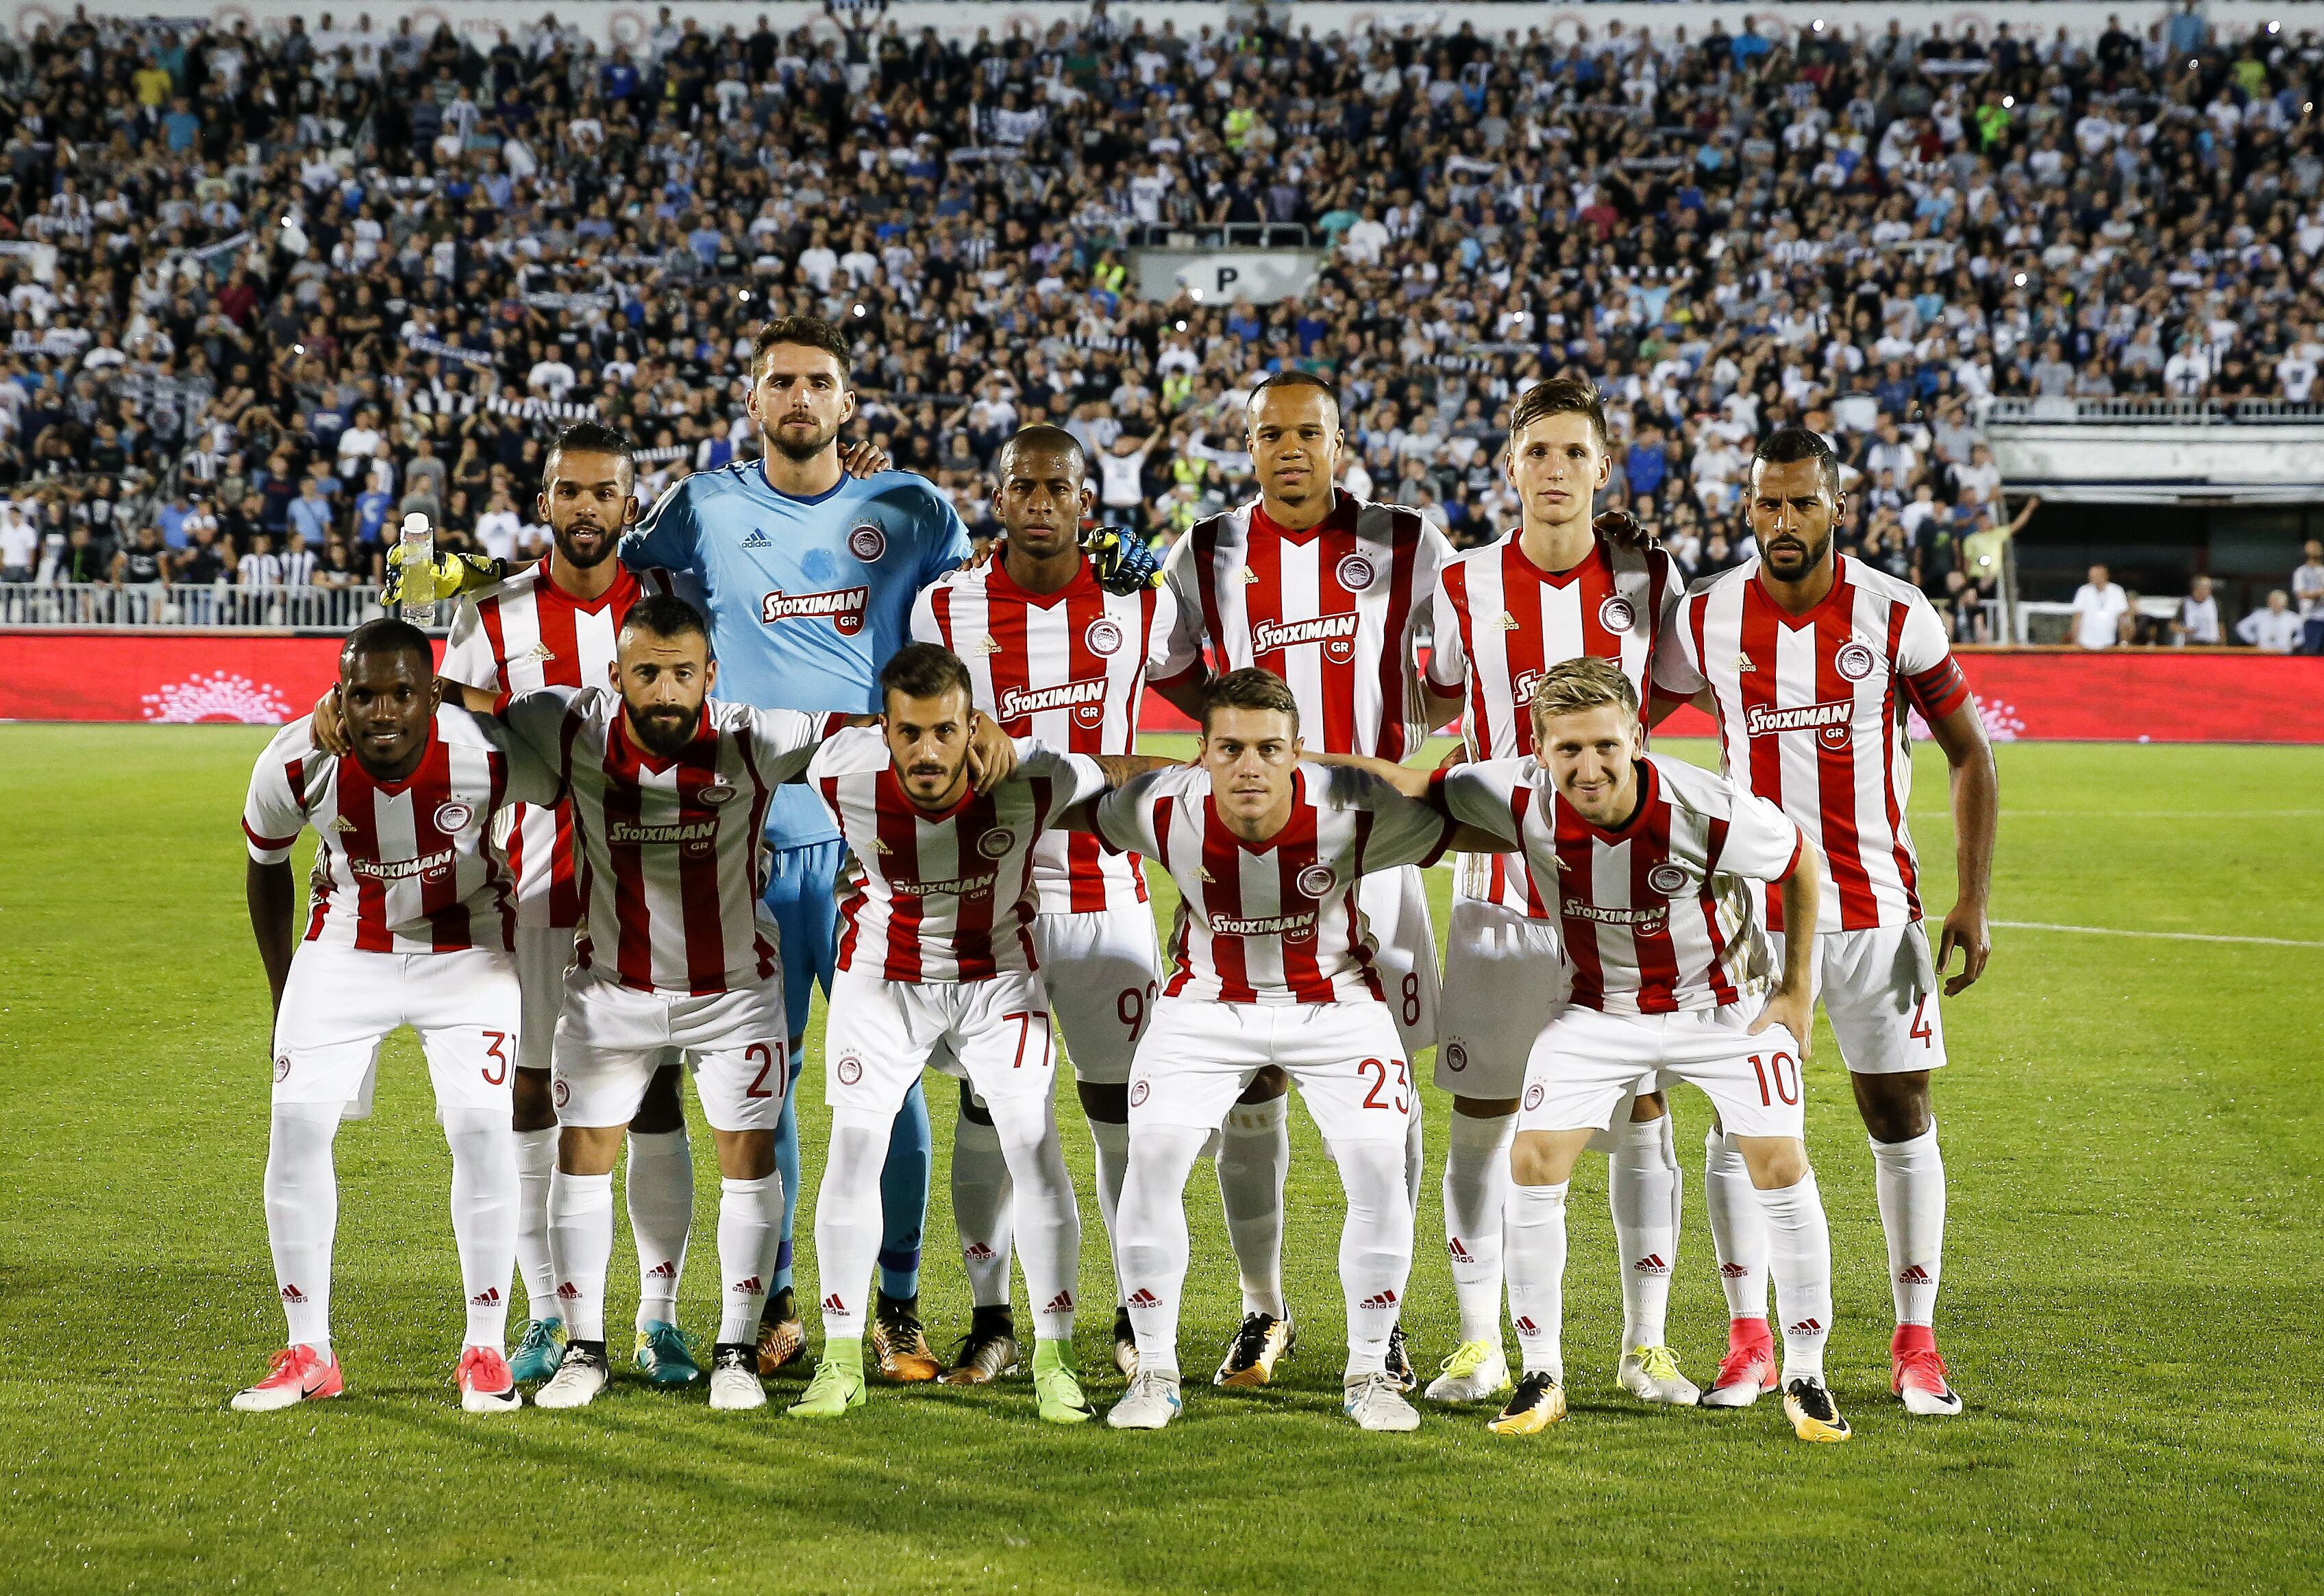 Sporting olympiacos online